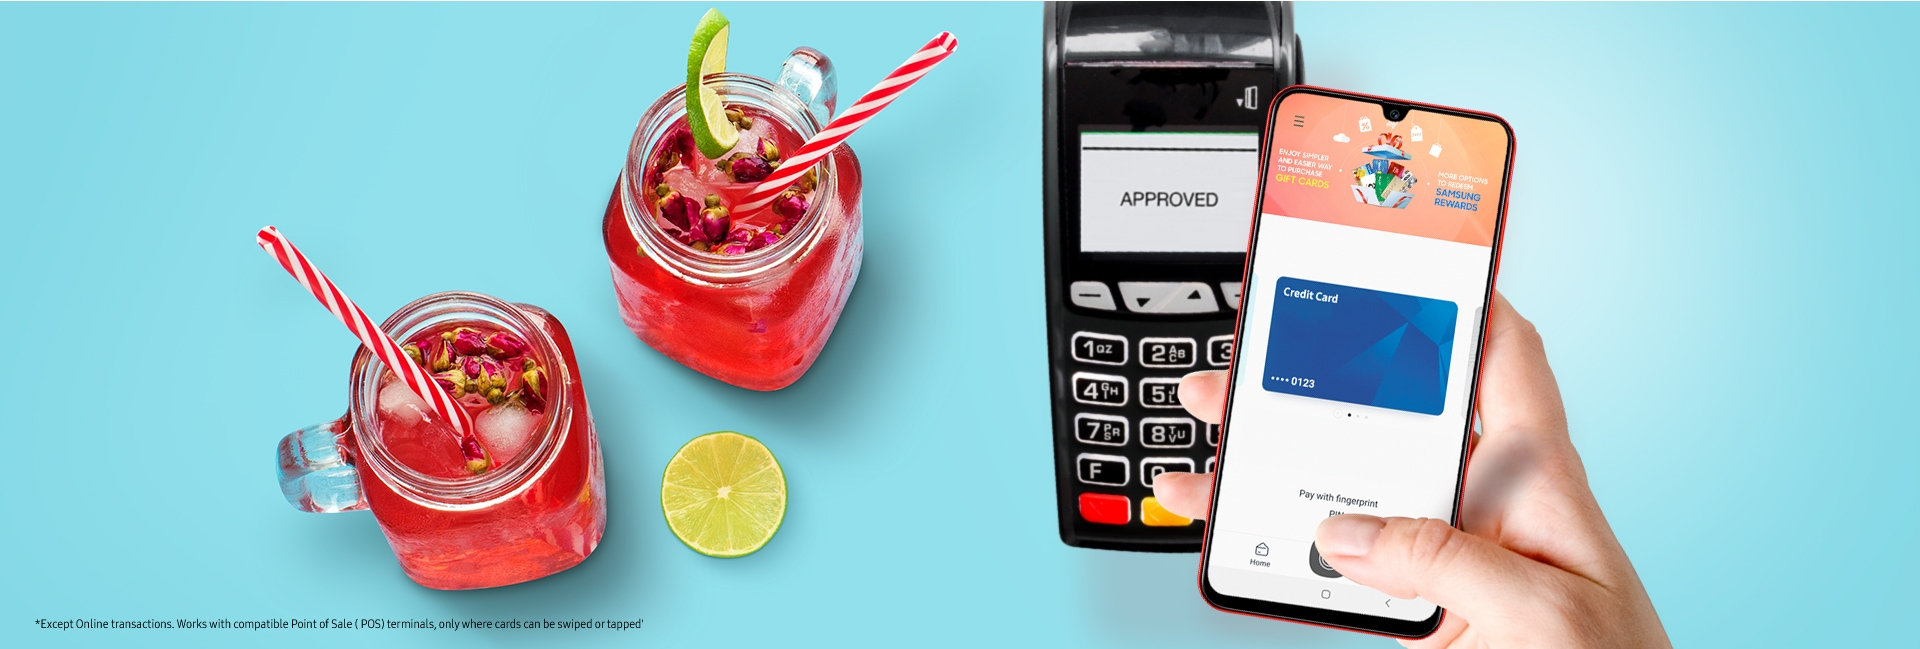 Samsung Galaxy A70s with Samsung Pay